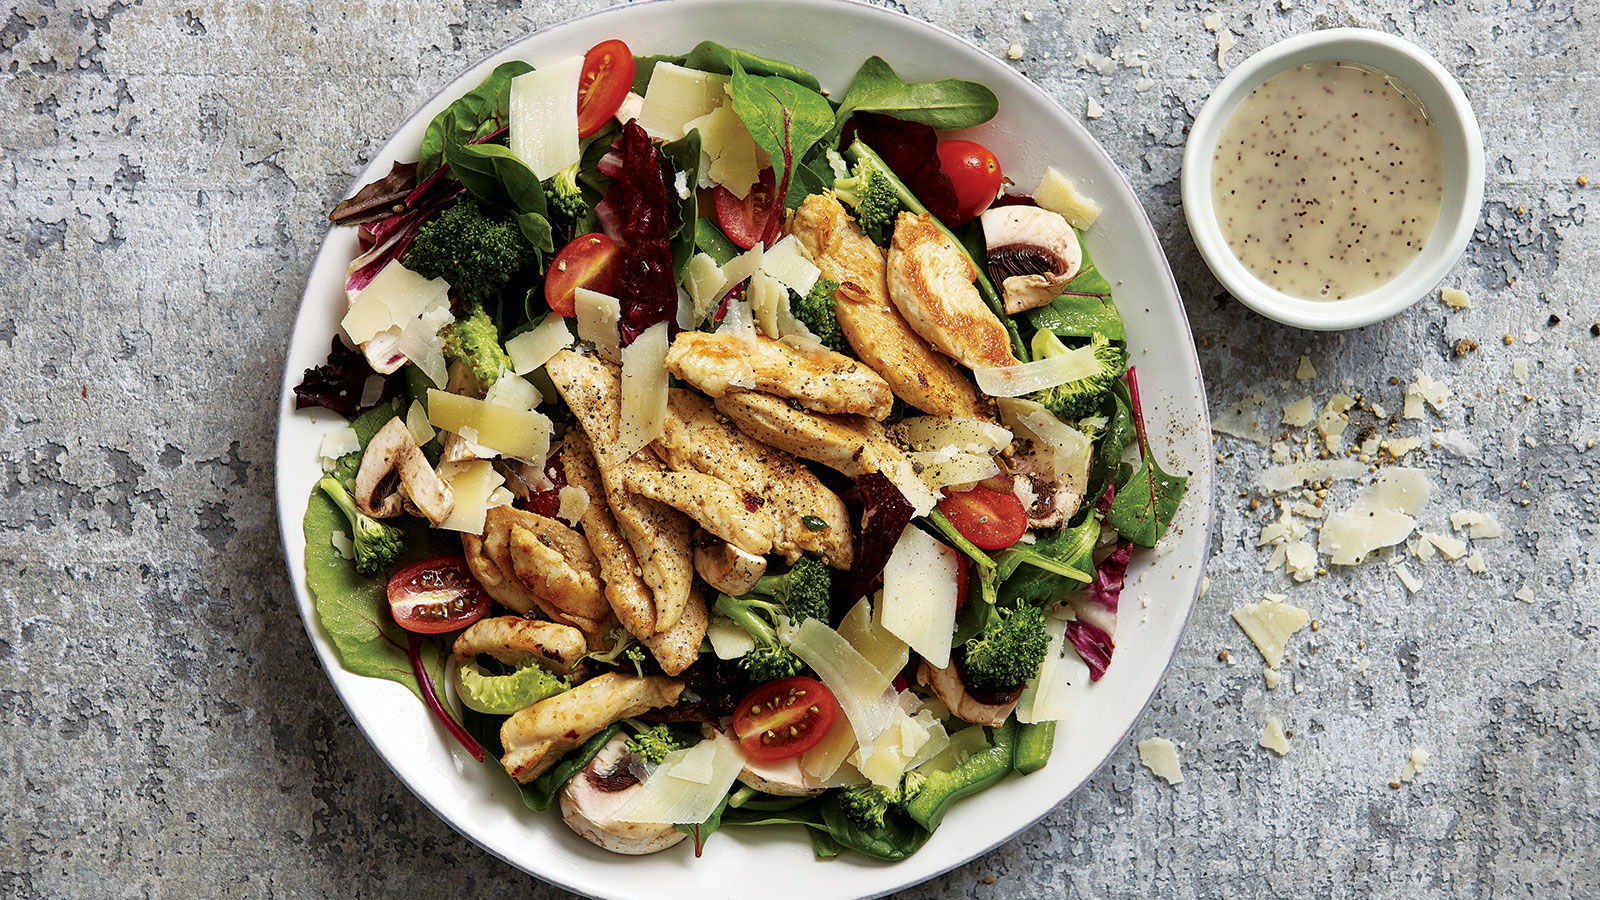 Warm-Chicken-Salad-with-Parmesan-and-Meyer-Lemon-Poppyseed-Dressing-LBM